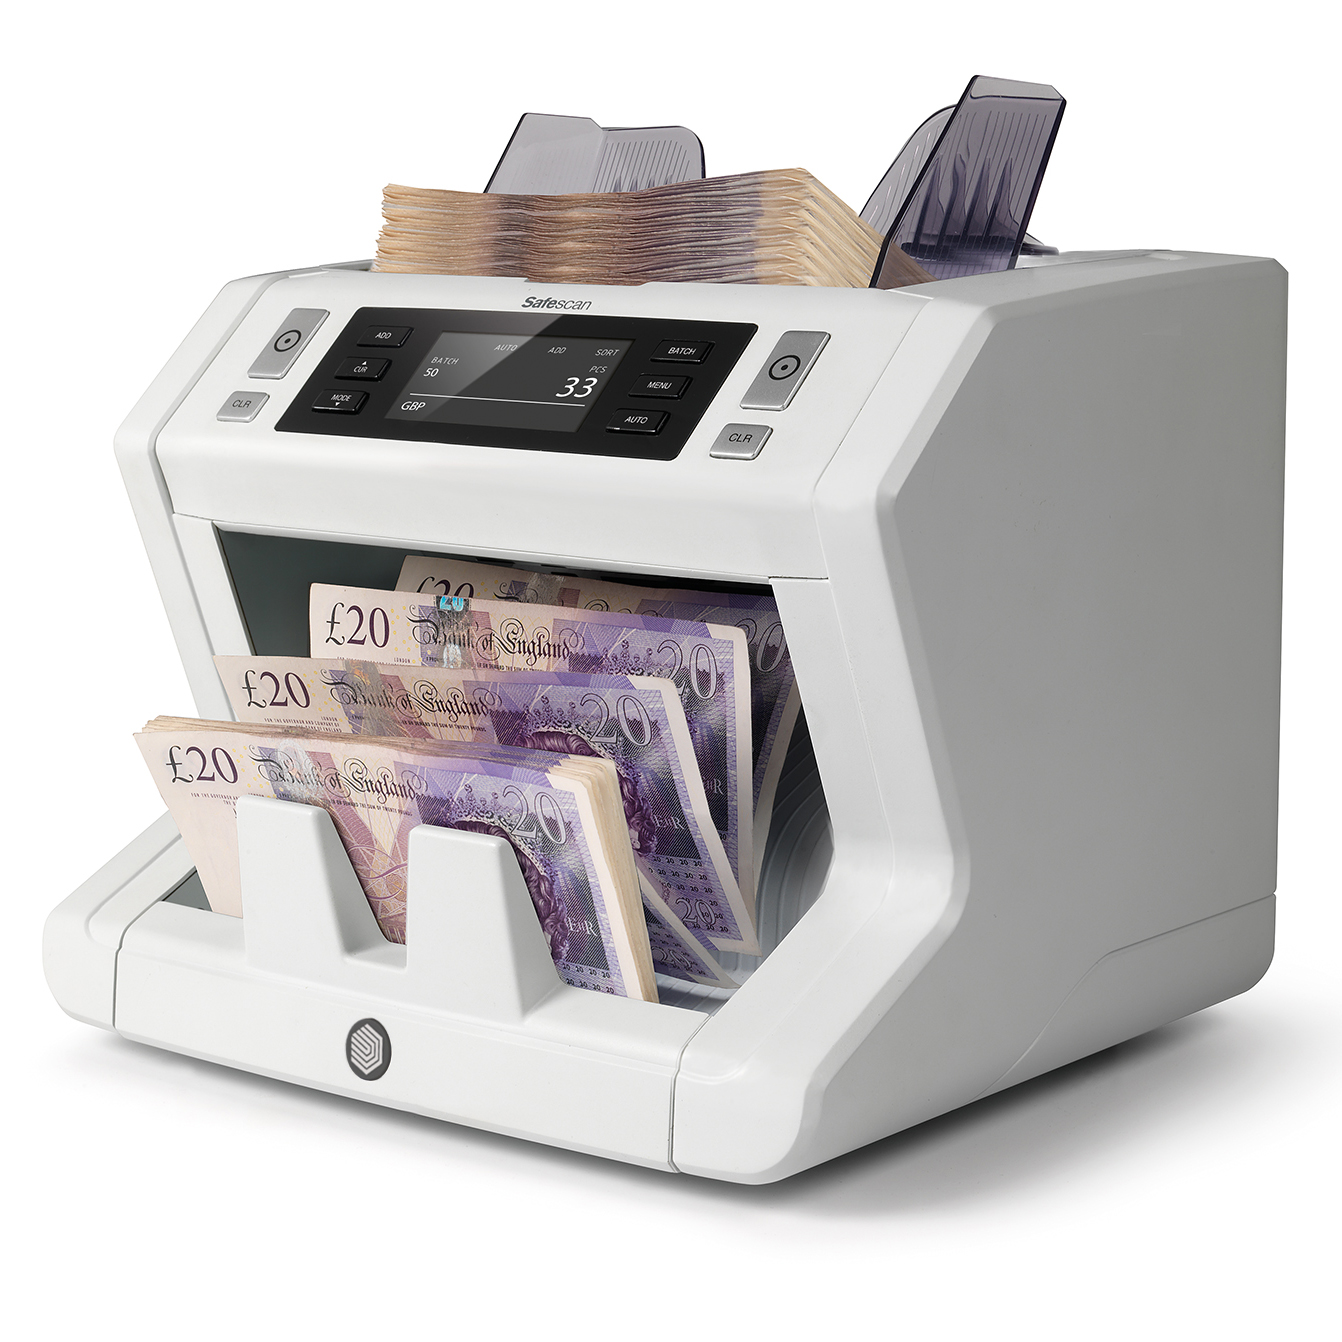 Image for Safescan 2680-S GBP Banknote Counter and Counterfeit Detector L262xW264xH248mm Grey Ref 112-0510